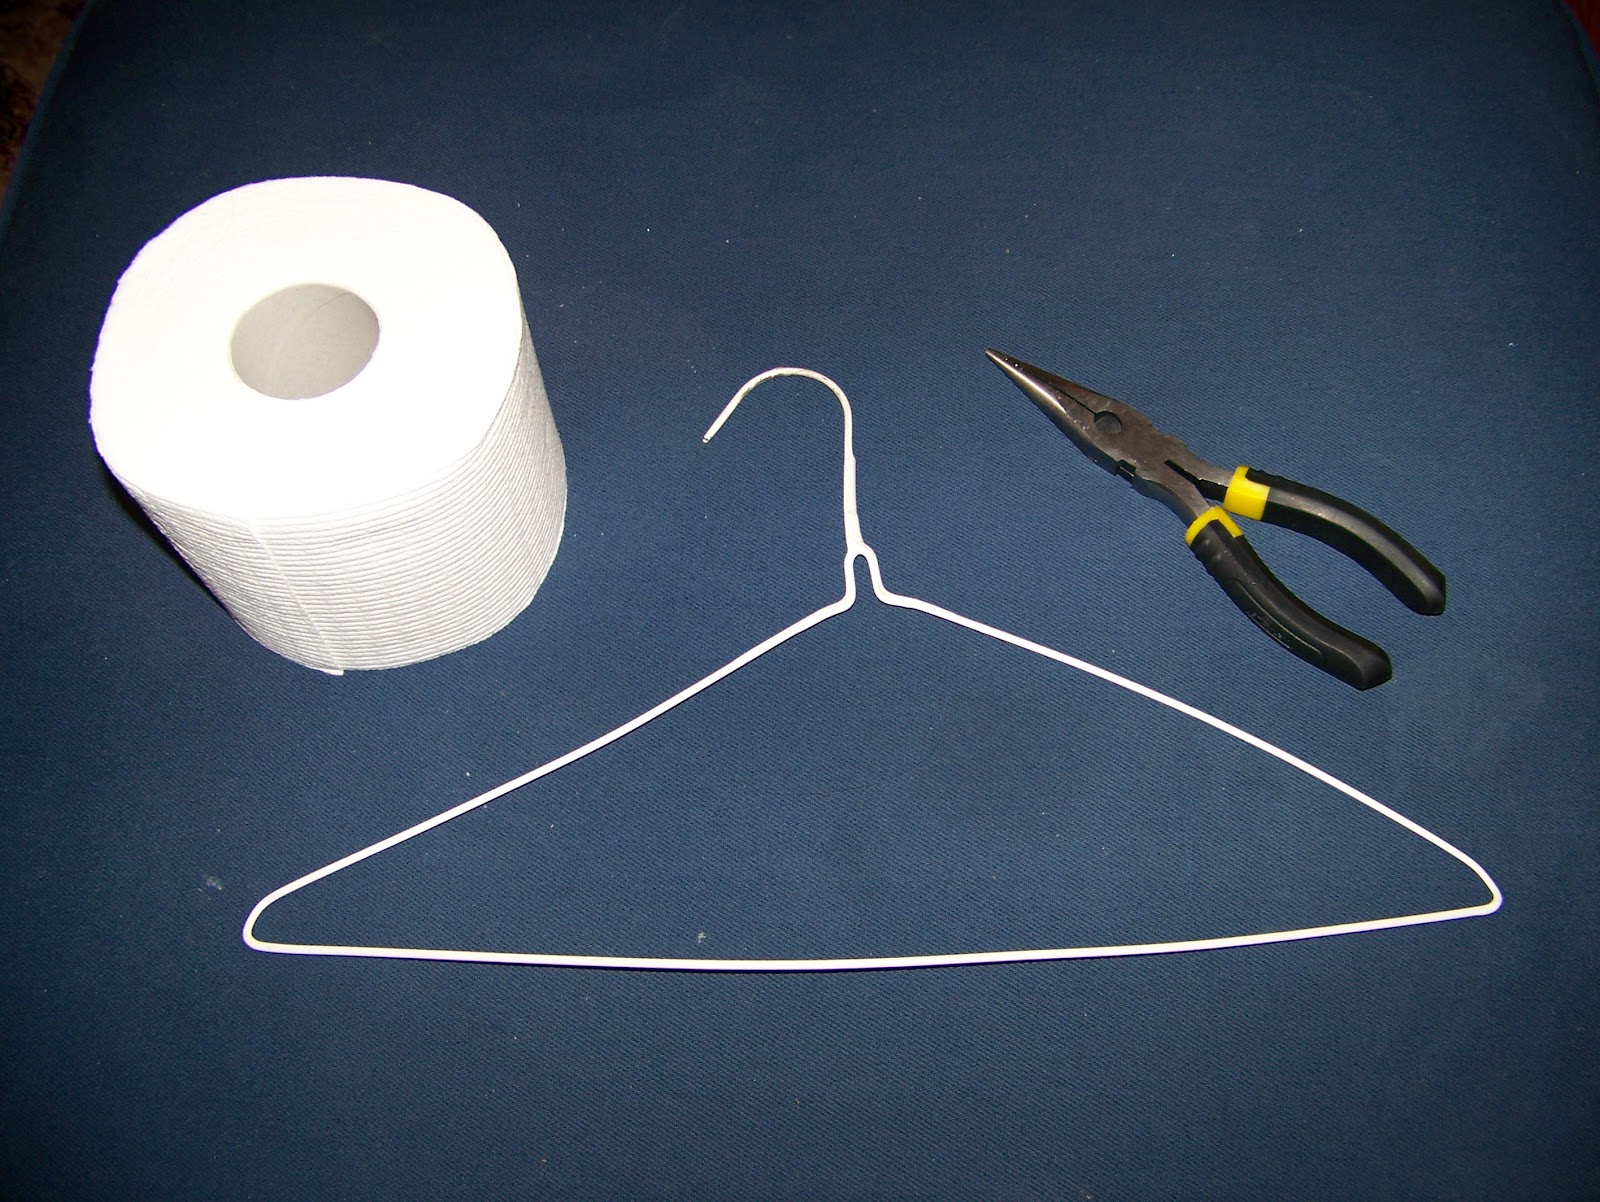 Making Cooley Stuff: Clothes Hanger Toilet Paper Holder